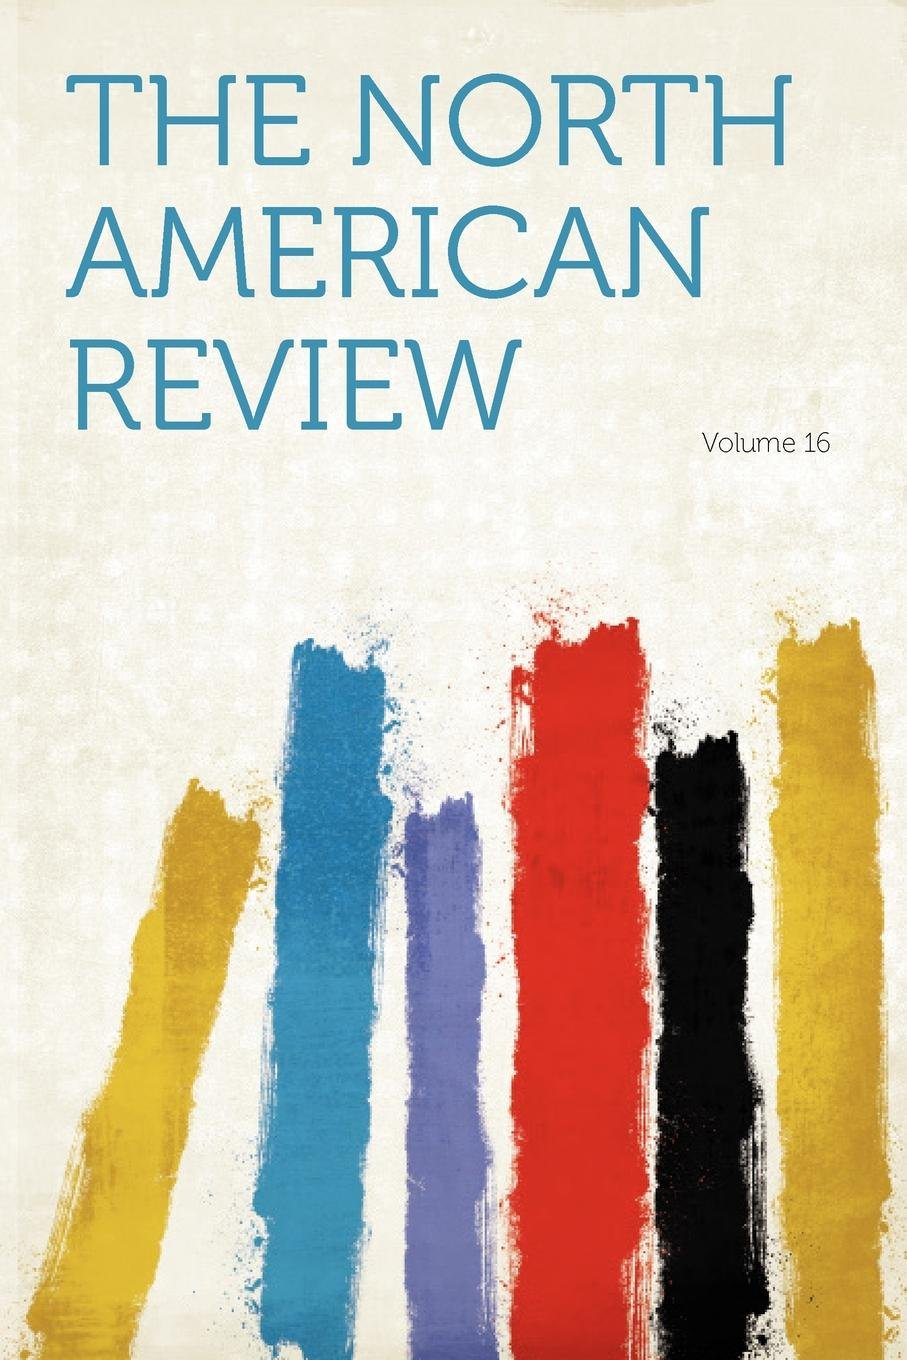 The North American Review Volume 16 pdf